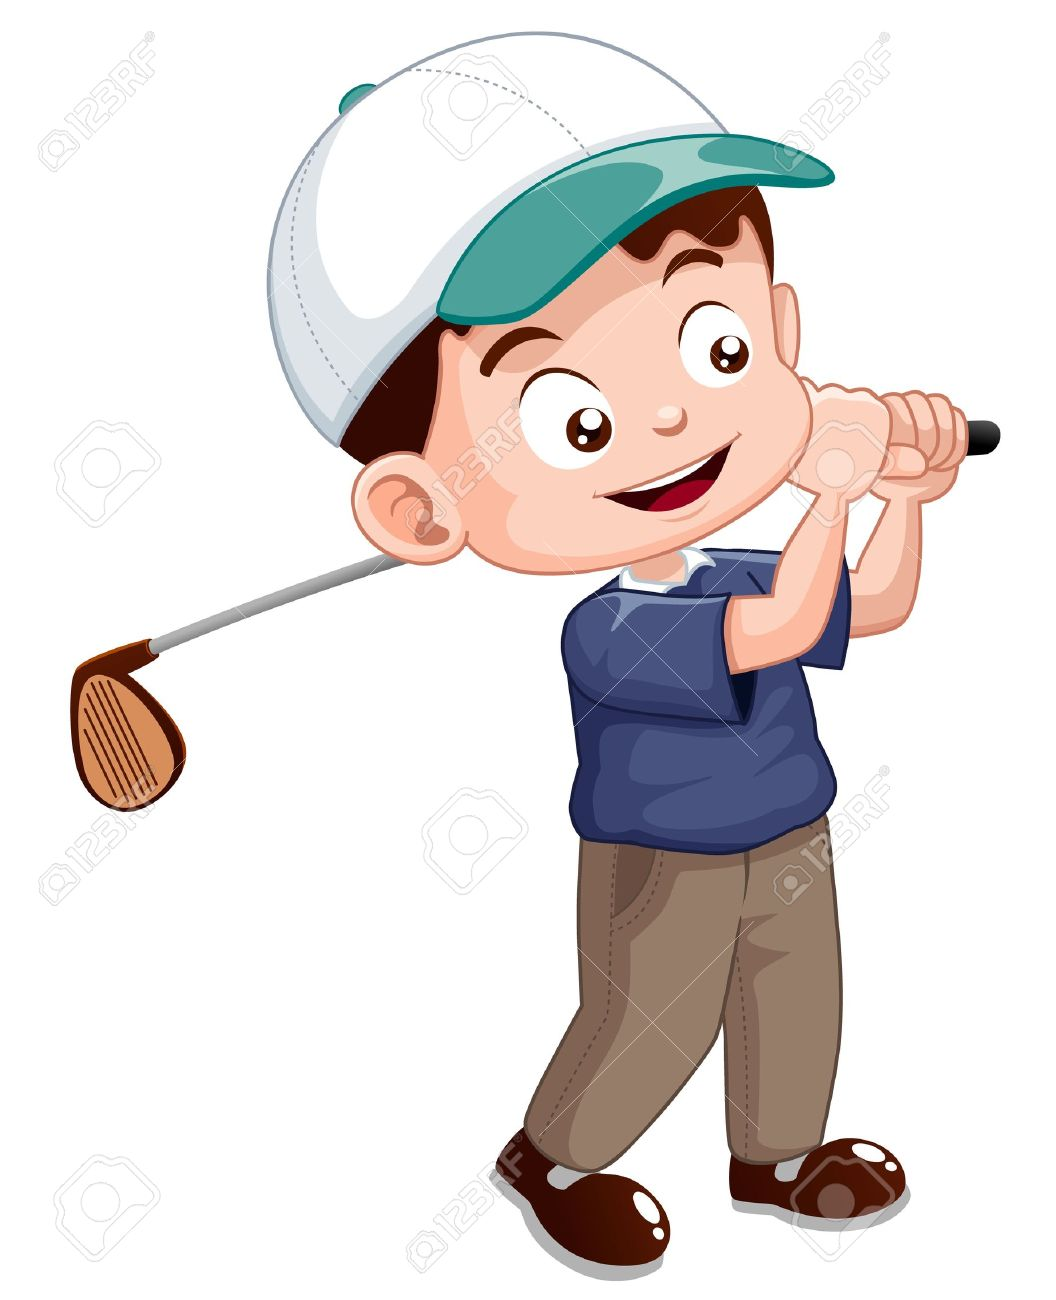 Illustration Of Young Golf Player Royalty Free Cliparts Vectors And Stock Illustration Image 15247767